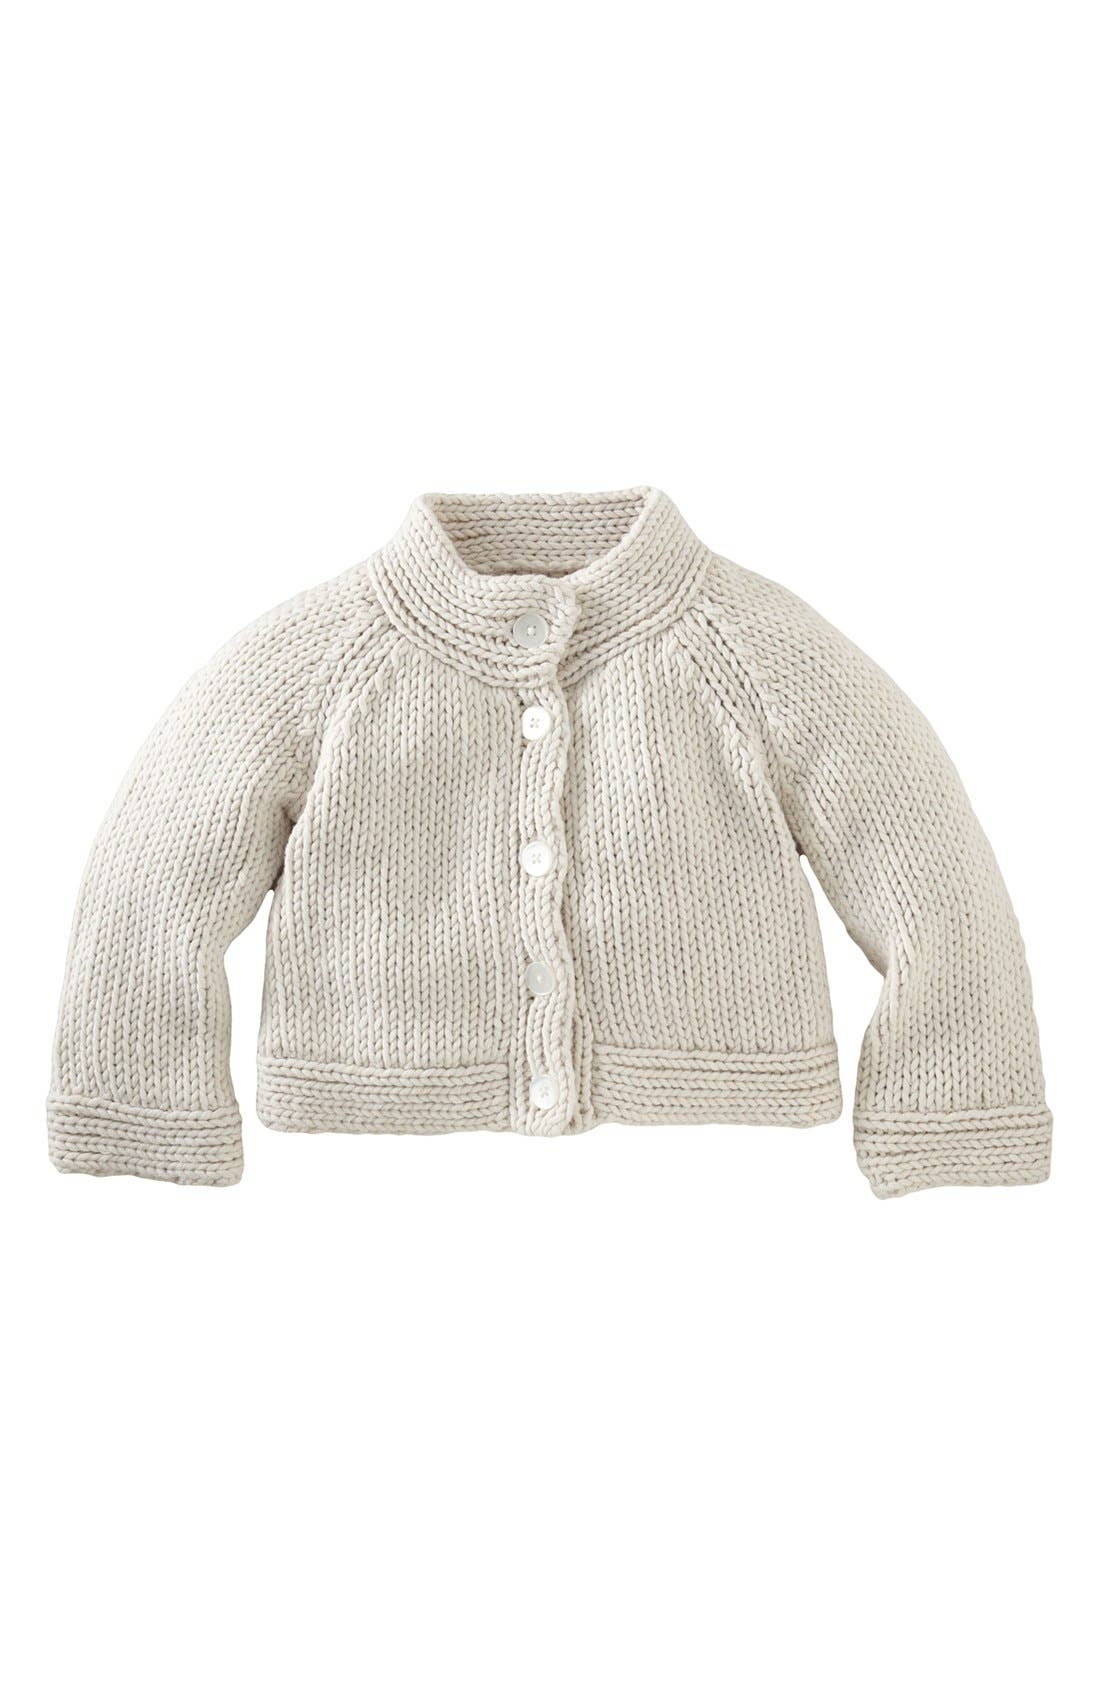 Alternate Image 1 Selected - Tea Collection Cozy Knit Sweater (Little Girls & Big Girls)